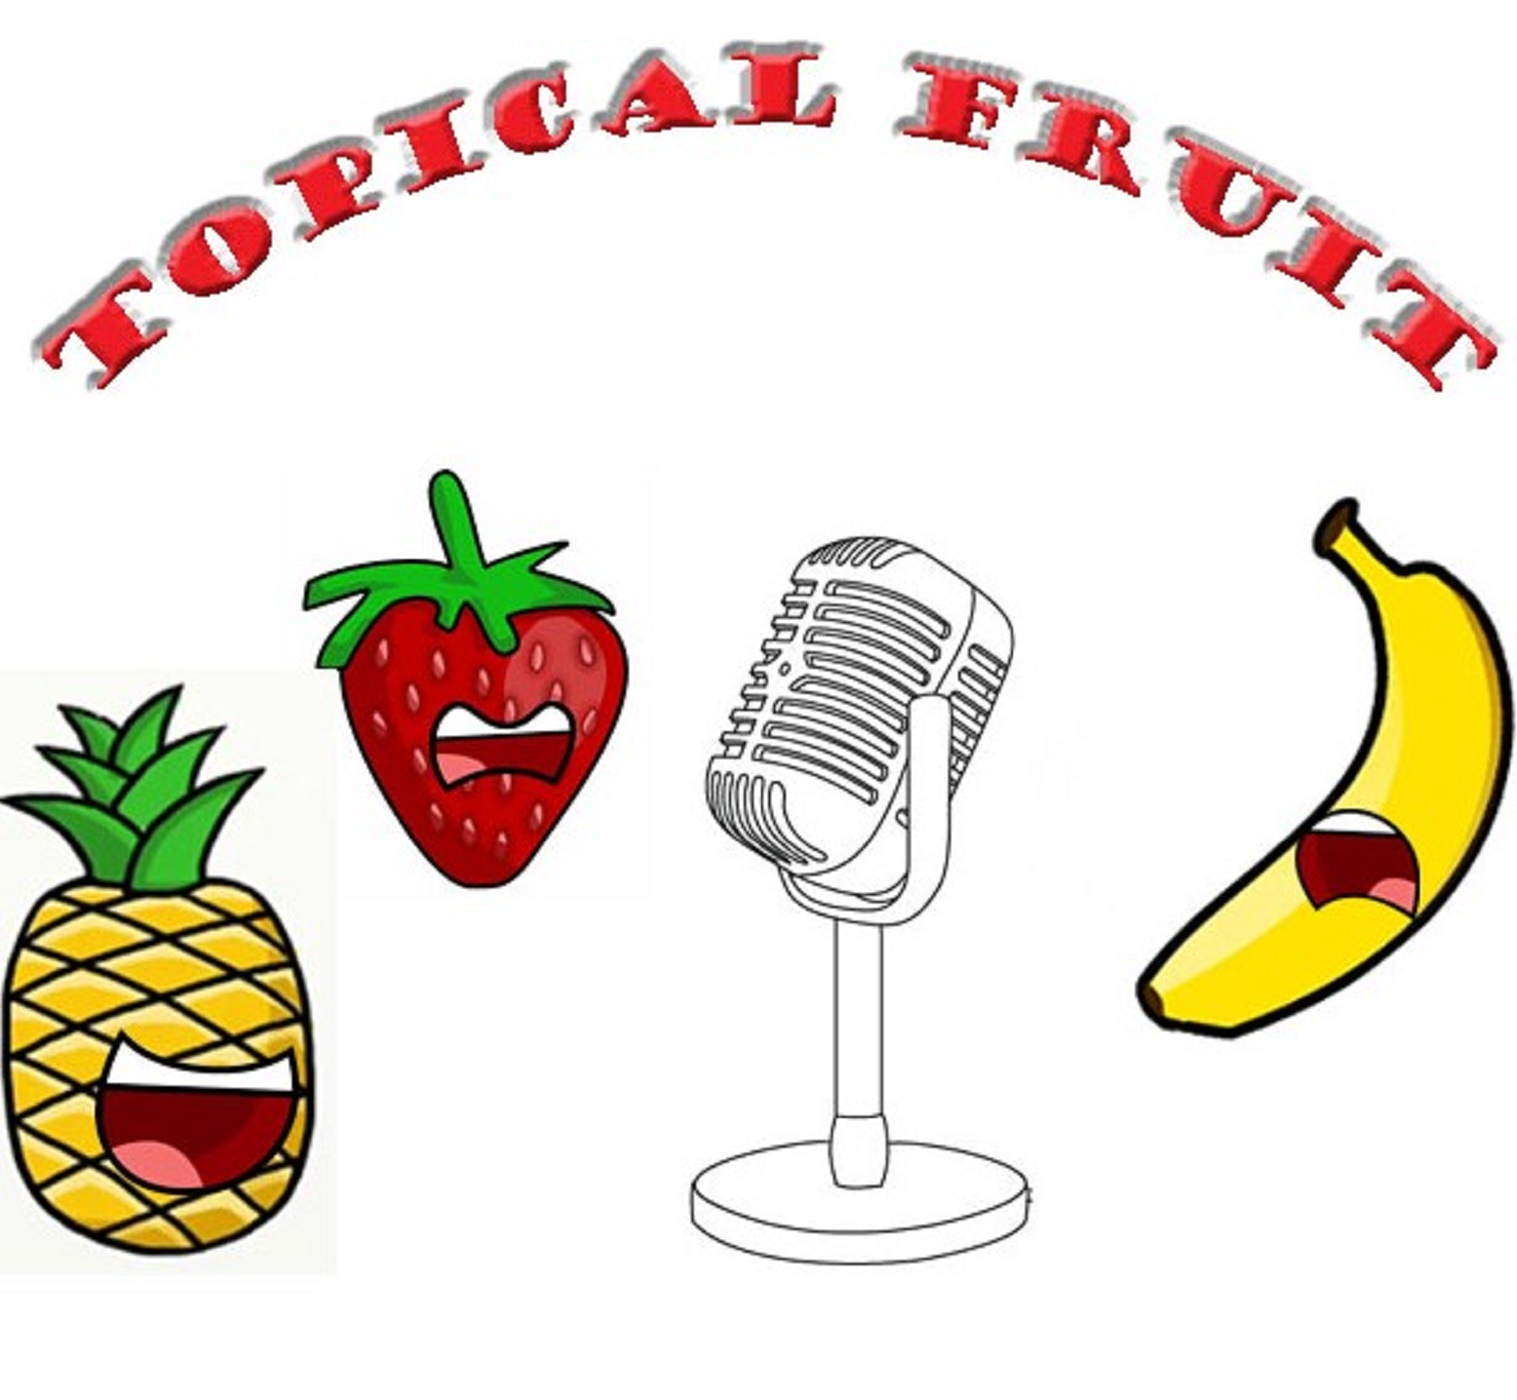 Topical Fruit show image